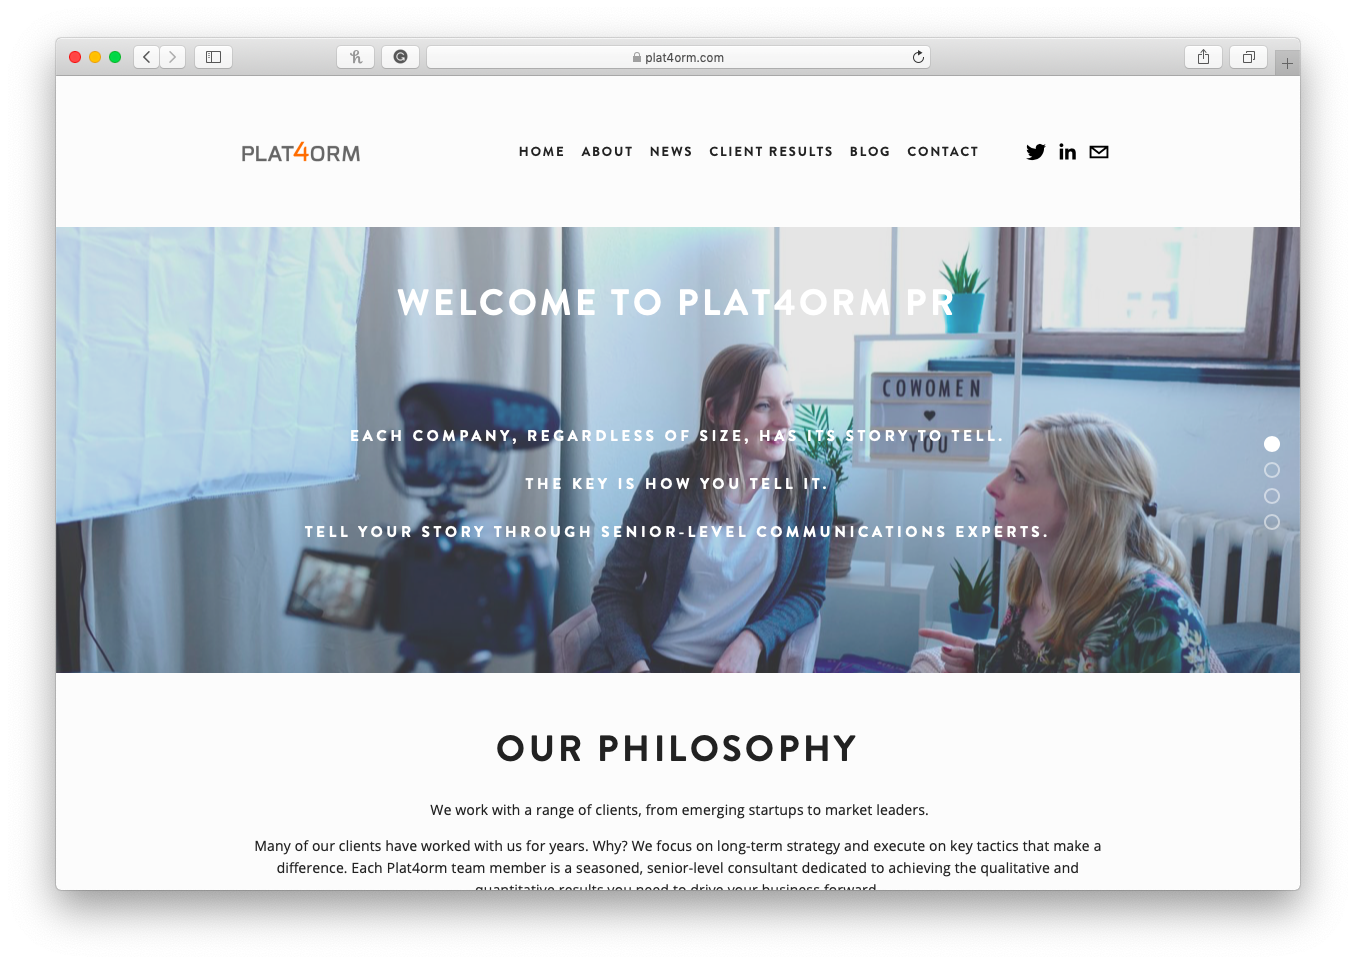 Plat4orm Home Page